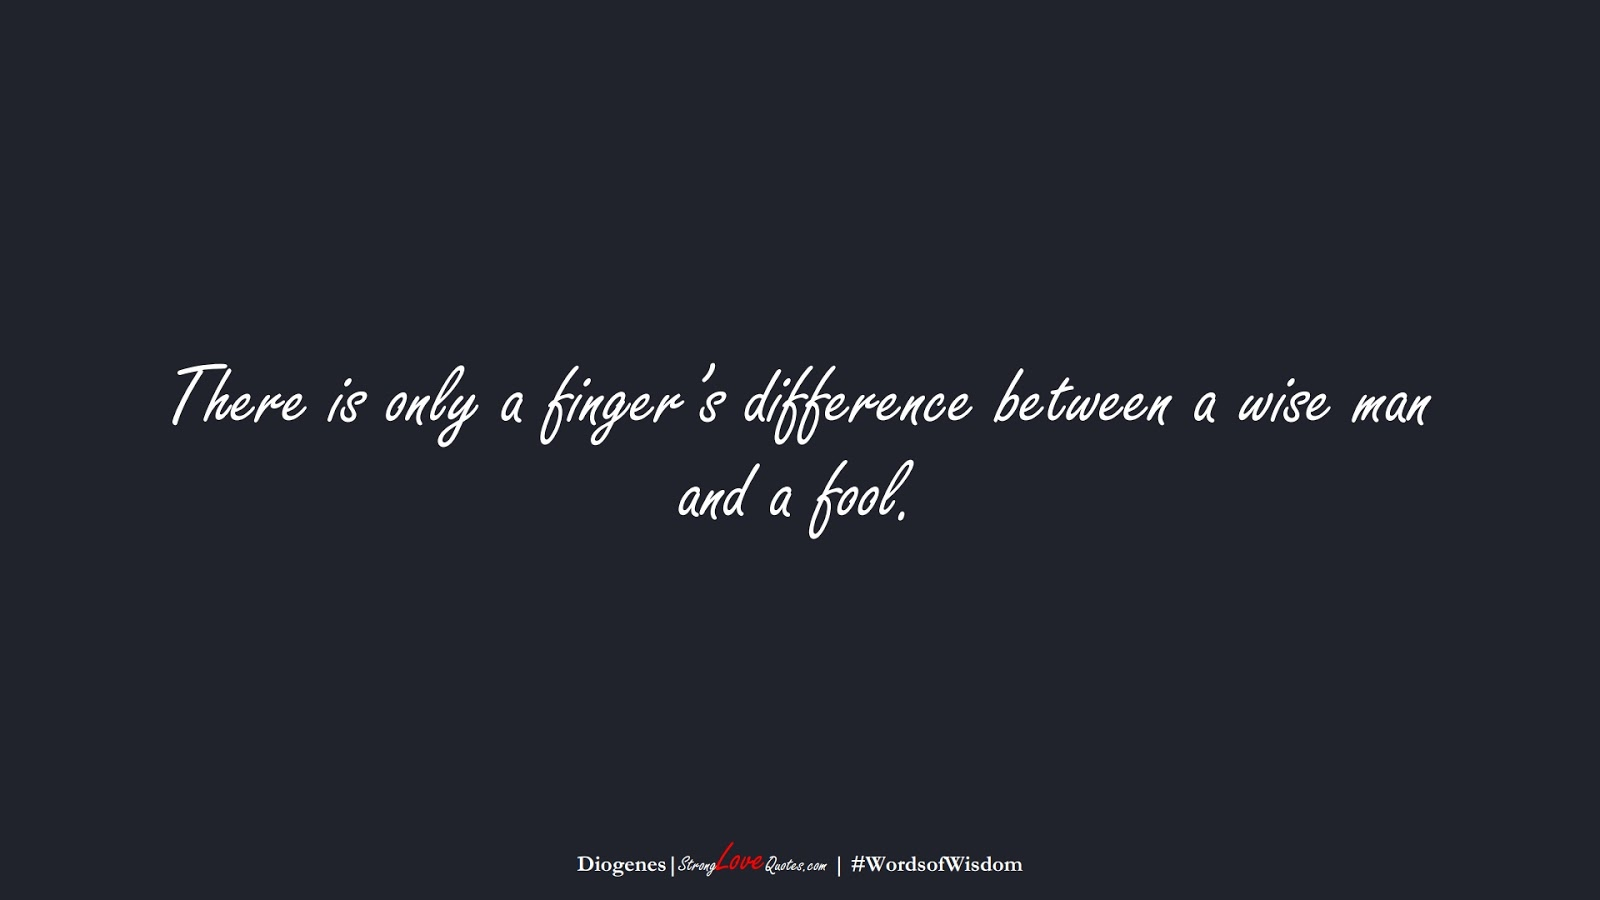 There is only a finger's difference between a wise man and a fool. (Diogenes);  #WordsofWisdom